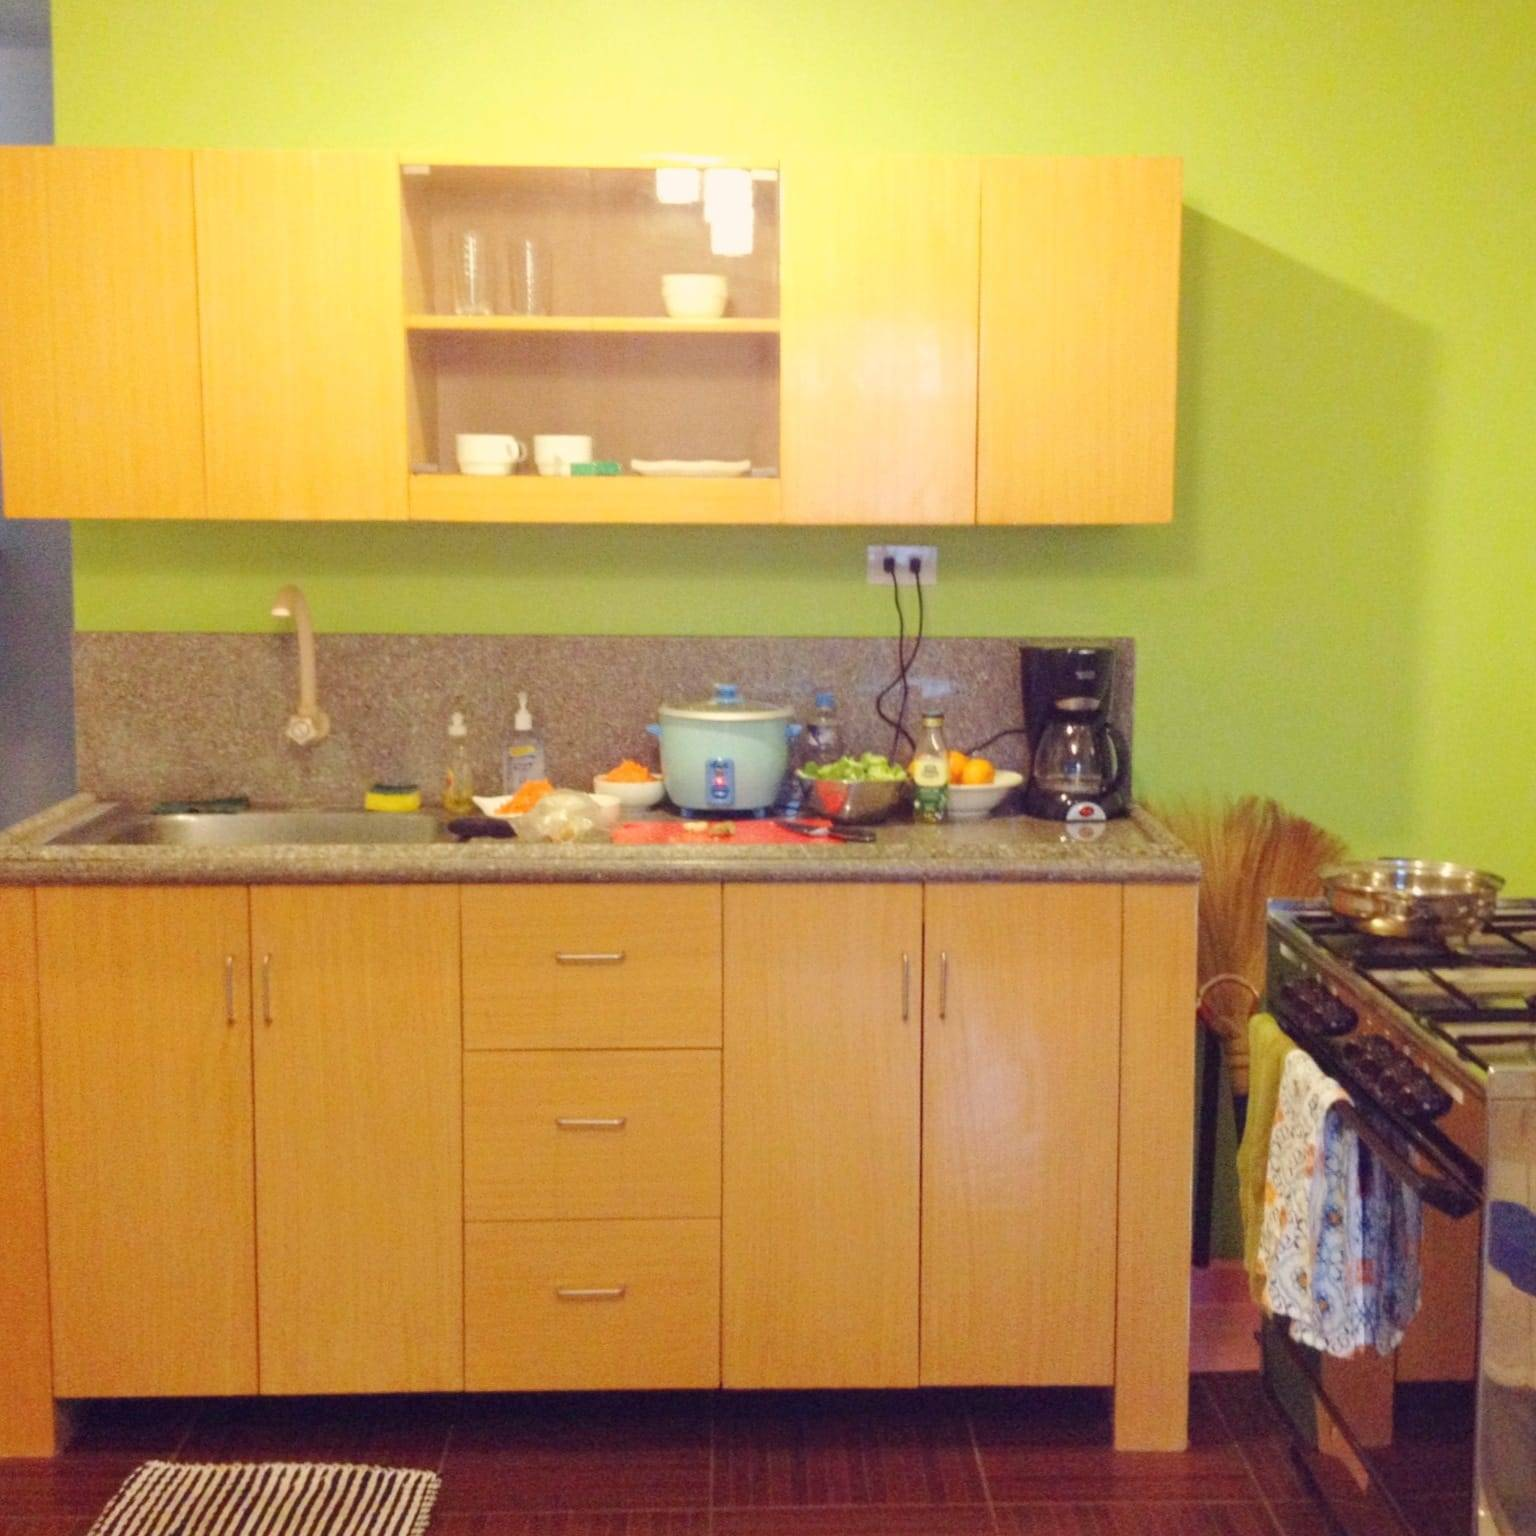 Small apartment kitchen.